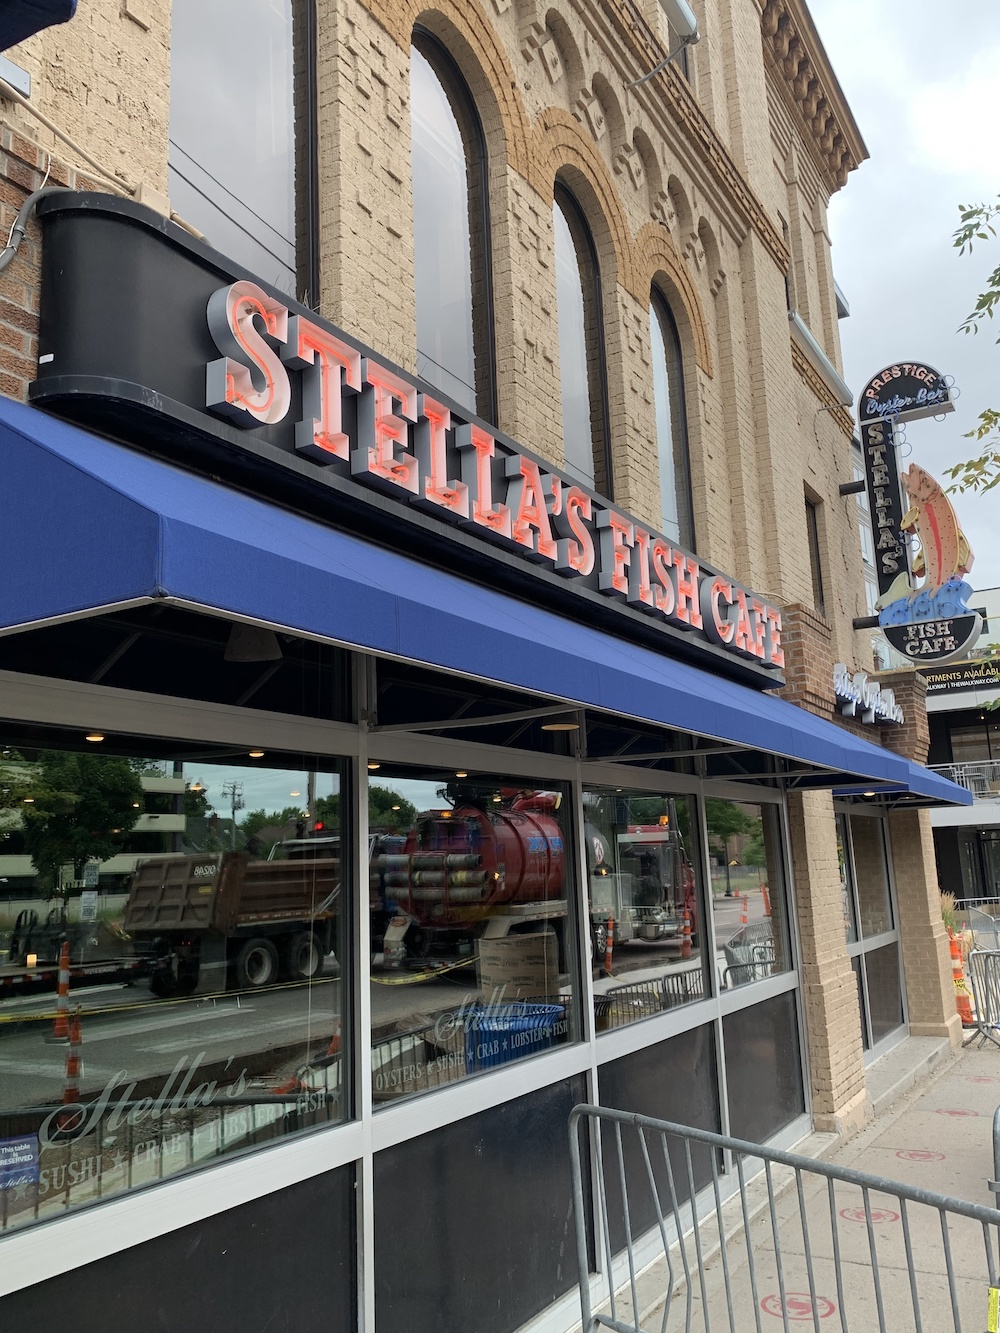 Stella's Fish Cafe